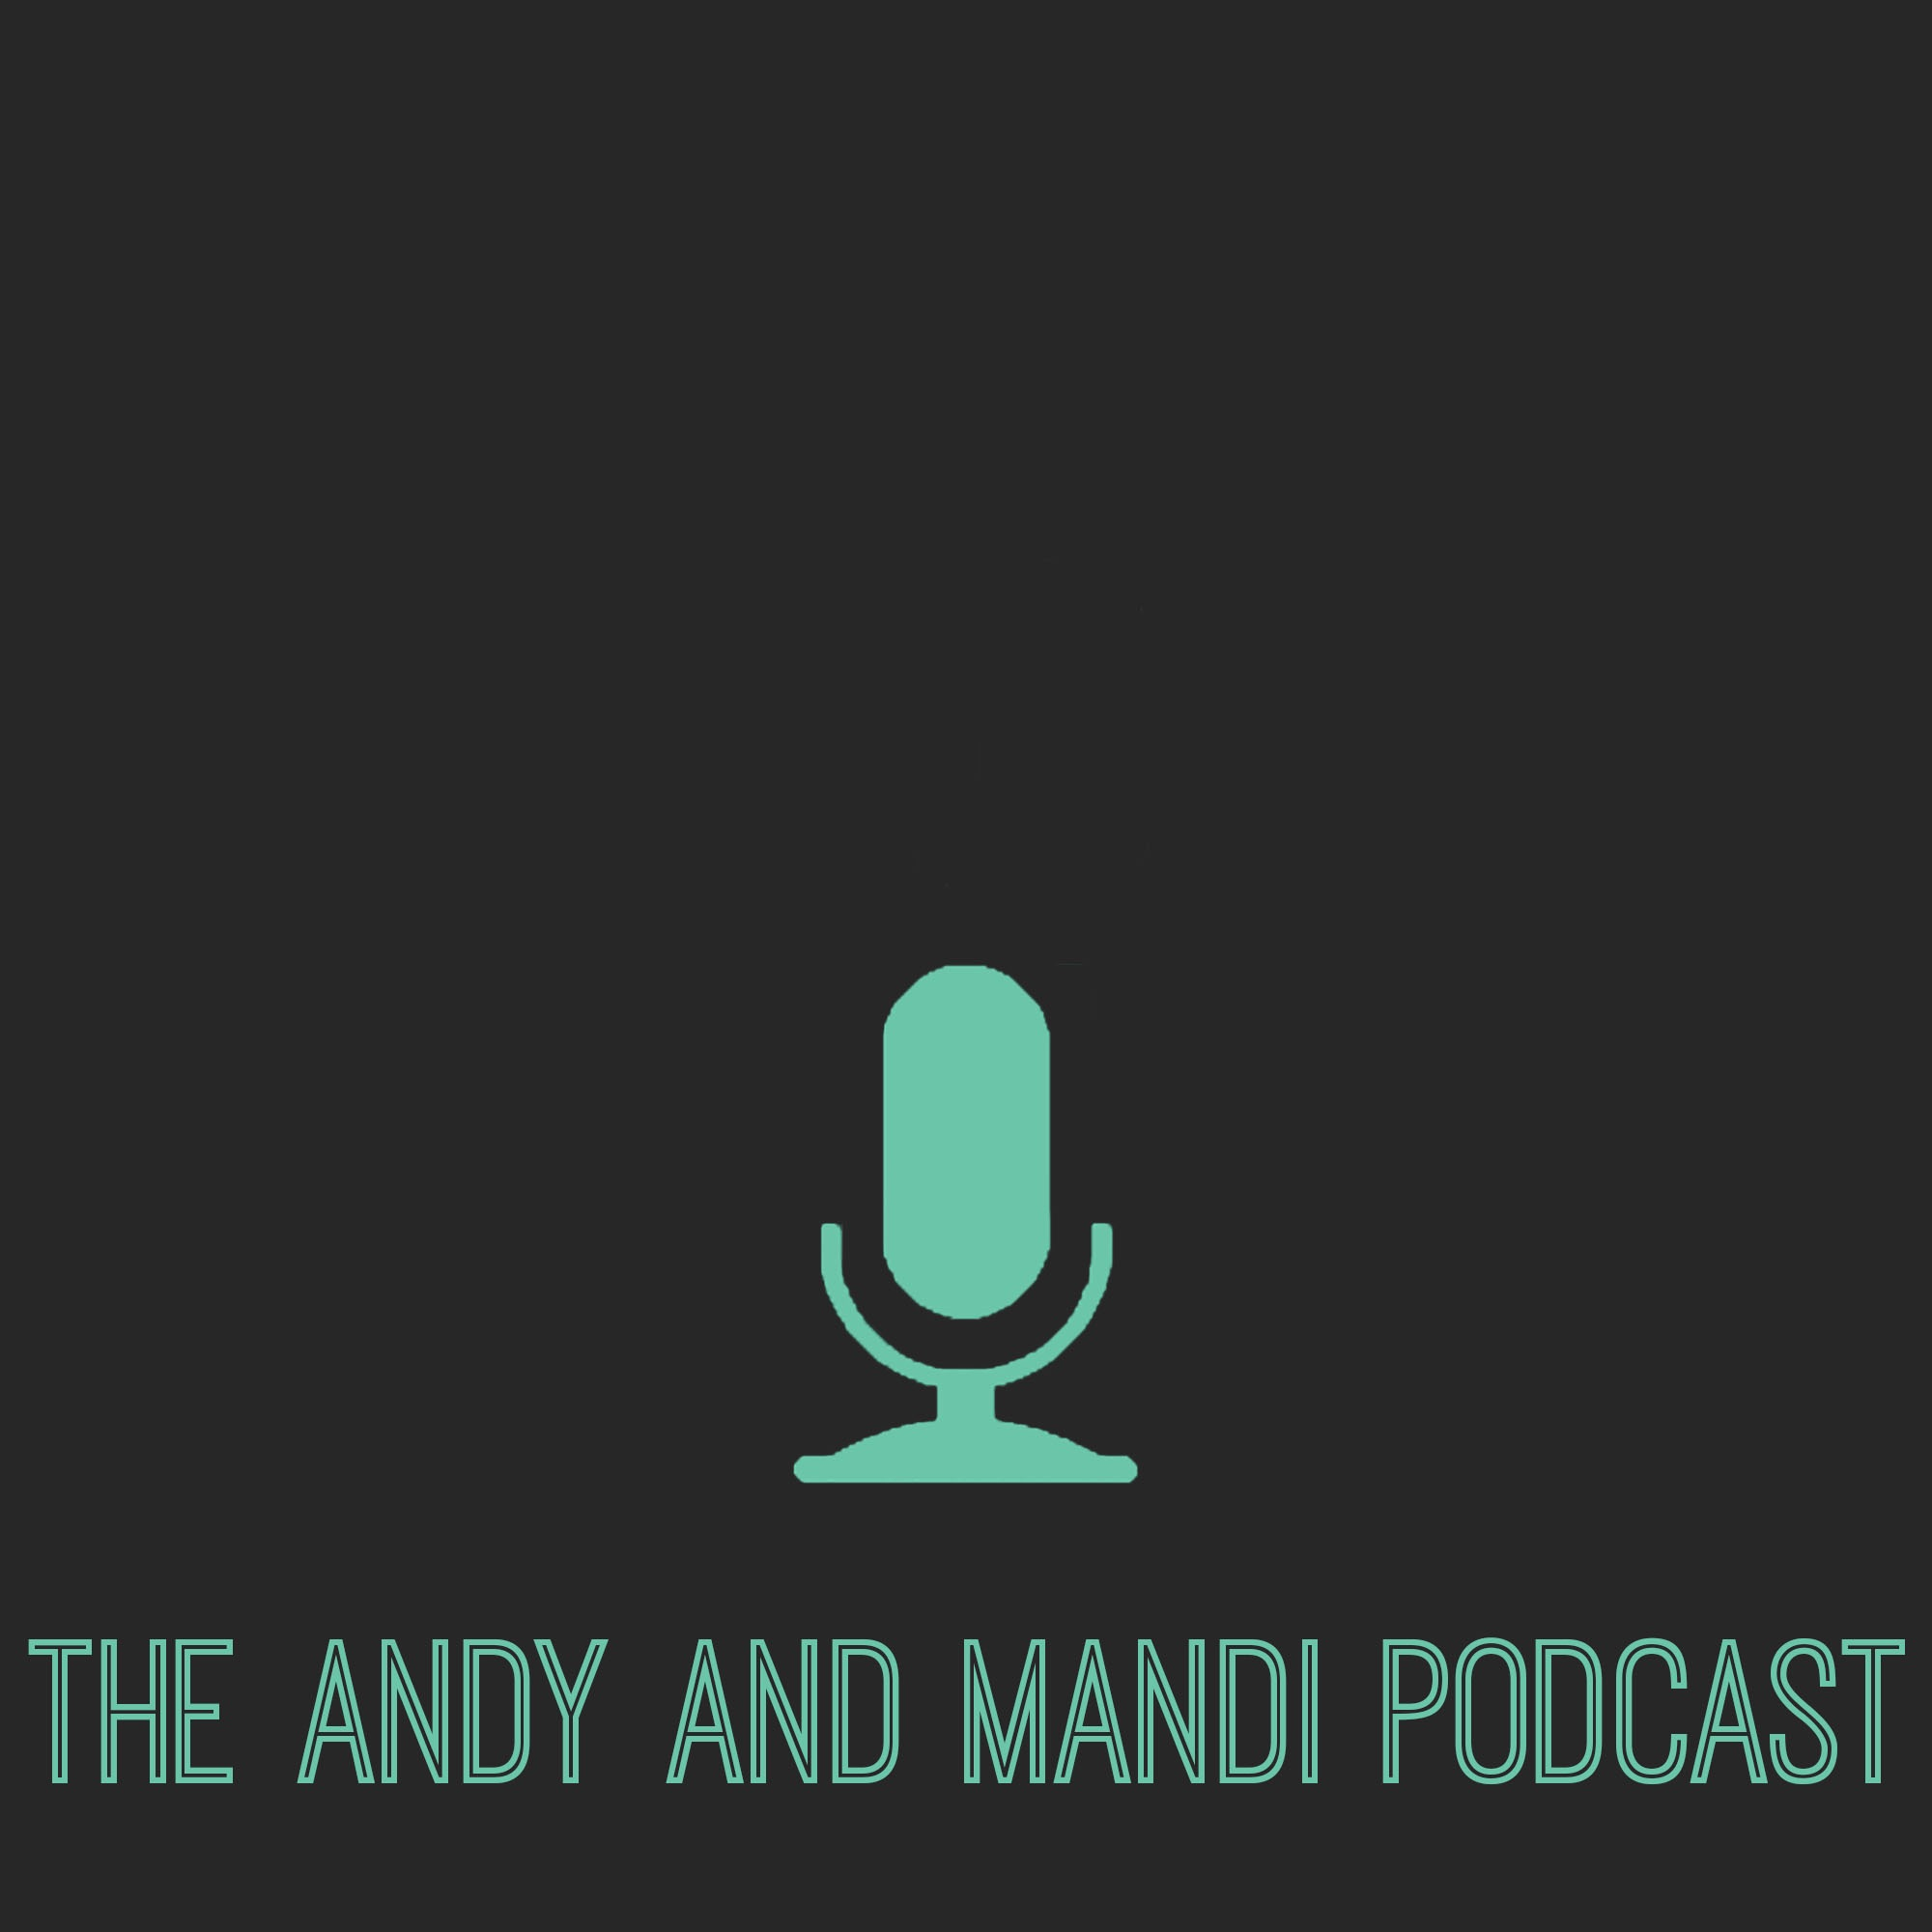 Andy and Mandi Podcast